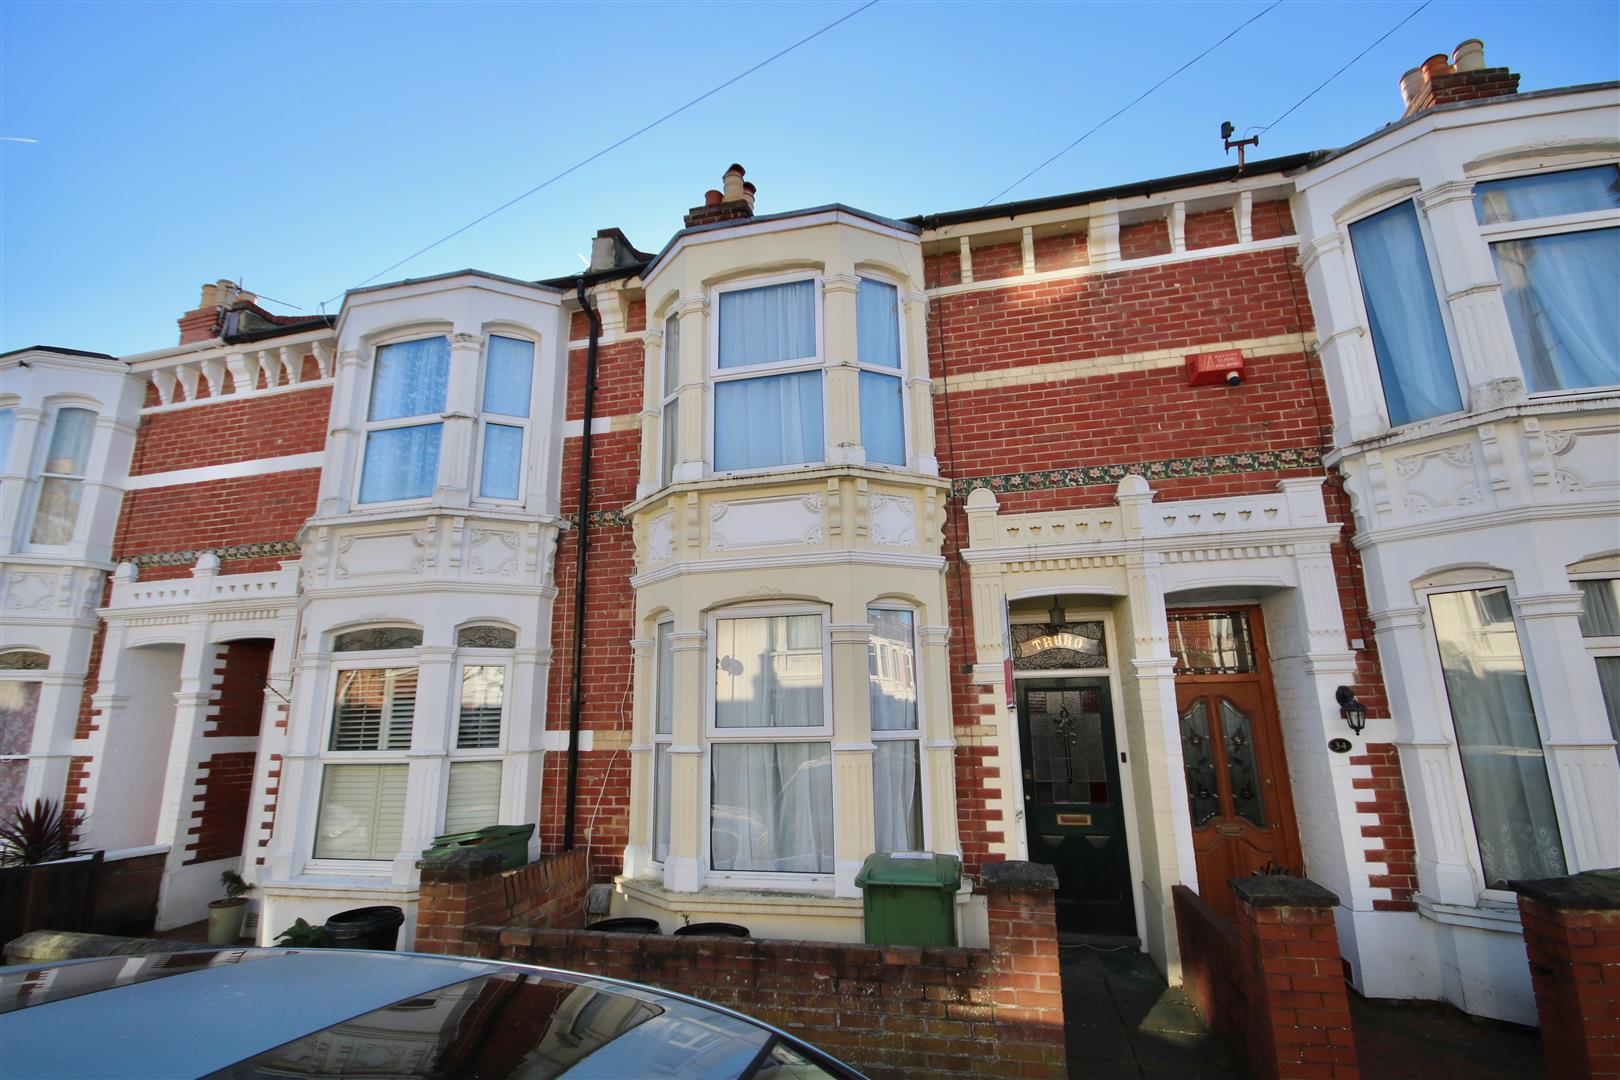 4 Bedrooms Terraced House for sale in Liss Road, SOUTHSEA, Portsmouth, Hampshire.